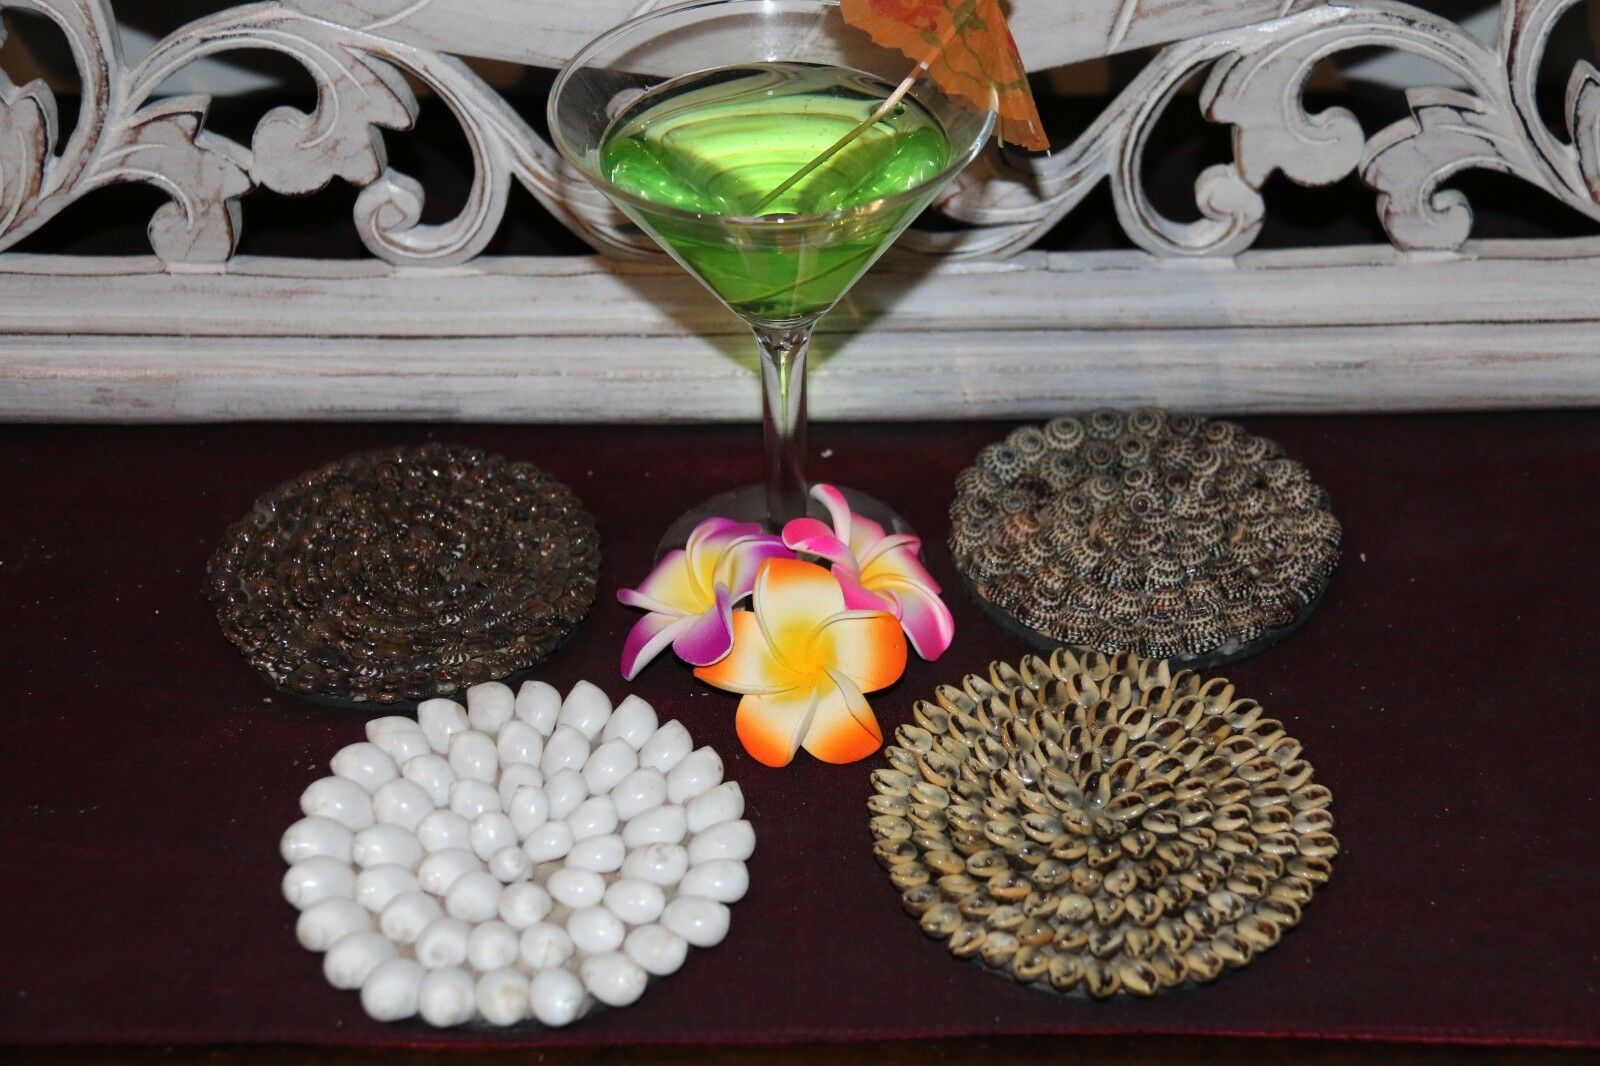 NEW Balinese Hand Crafted Shell Encrusted Coasters - Shell Home Decor